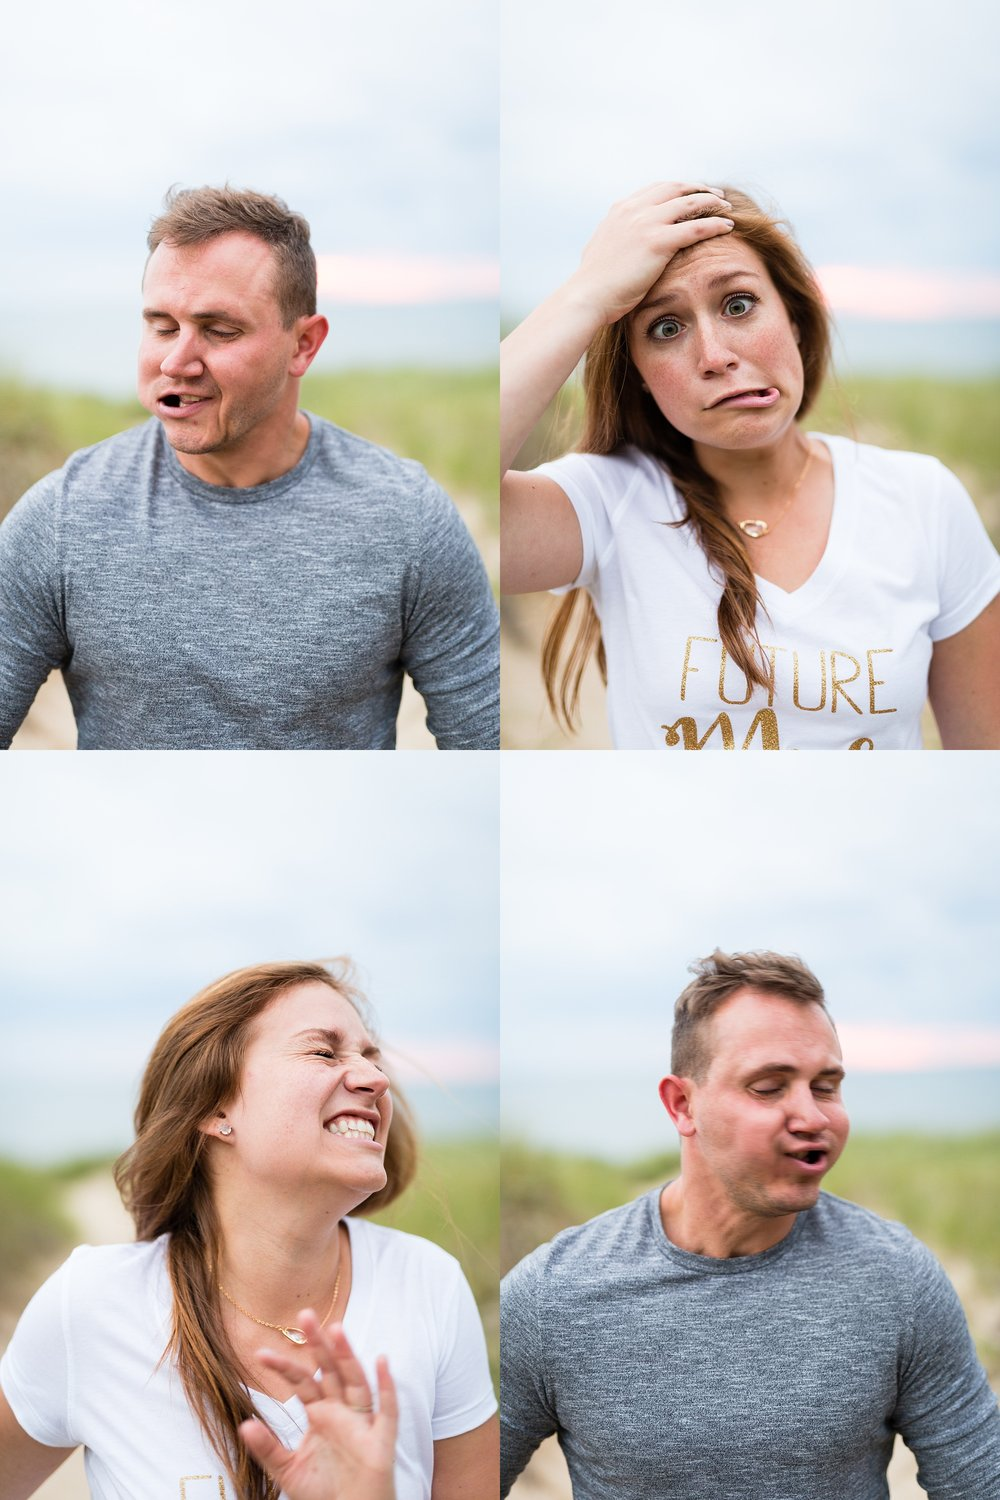 Lila_Ryan_Holland_Lakeshore_Beach_Drone_Engagement_Photos_0025.jpg